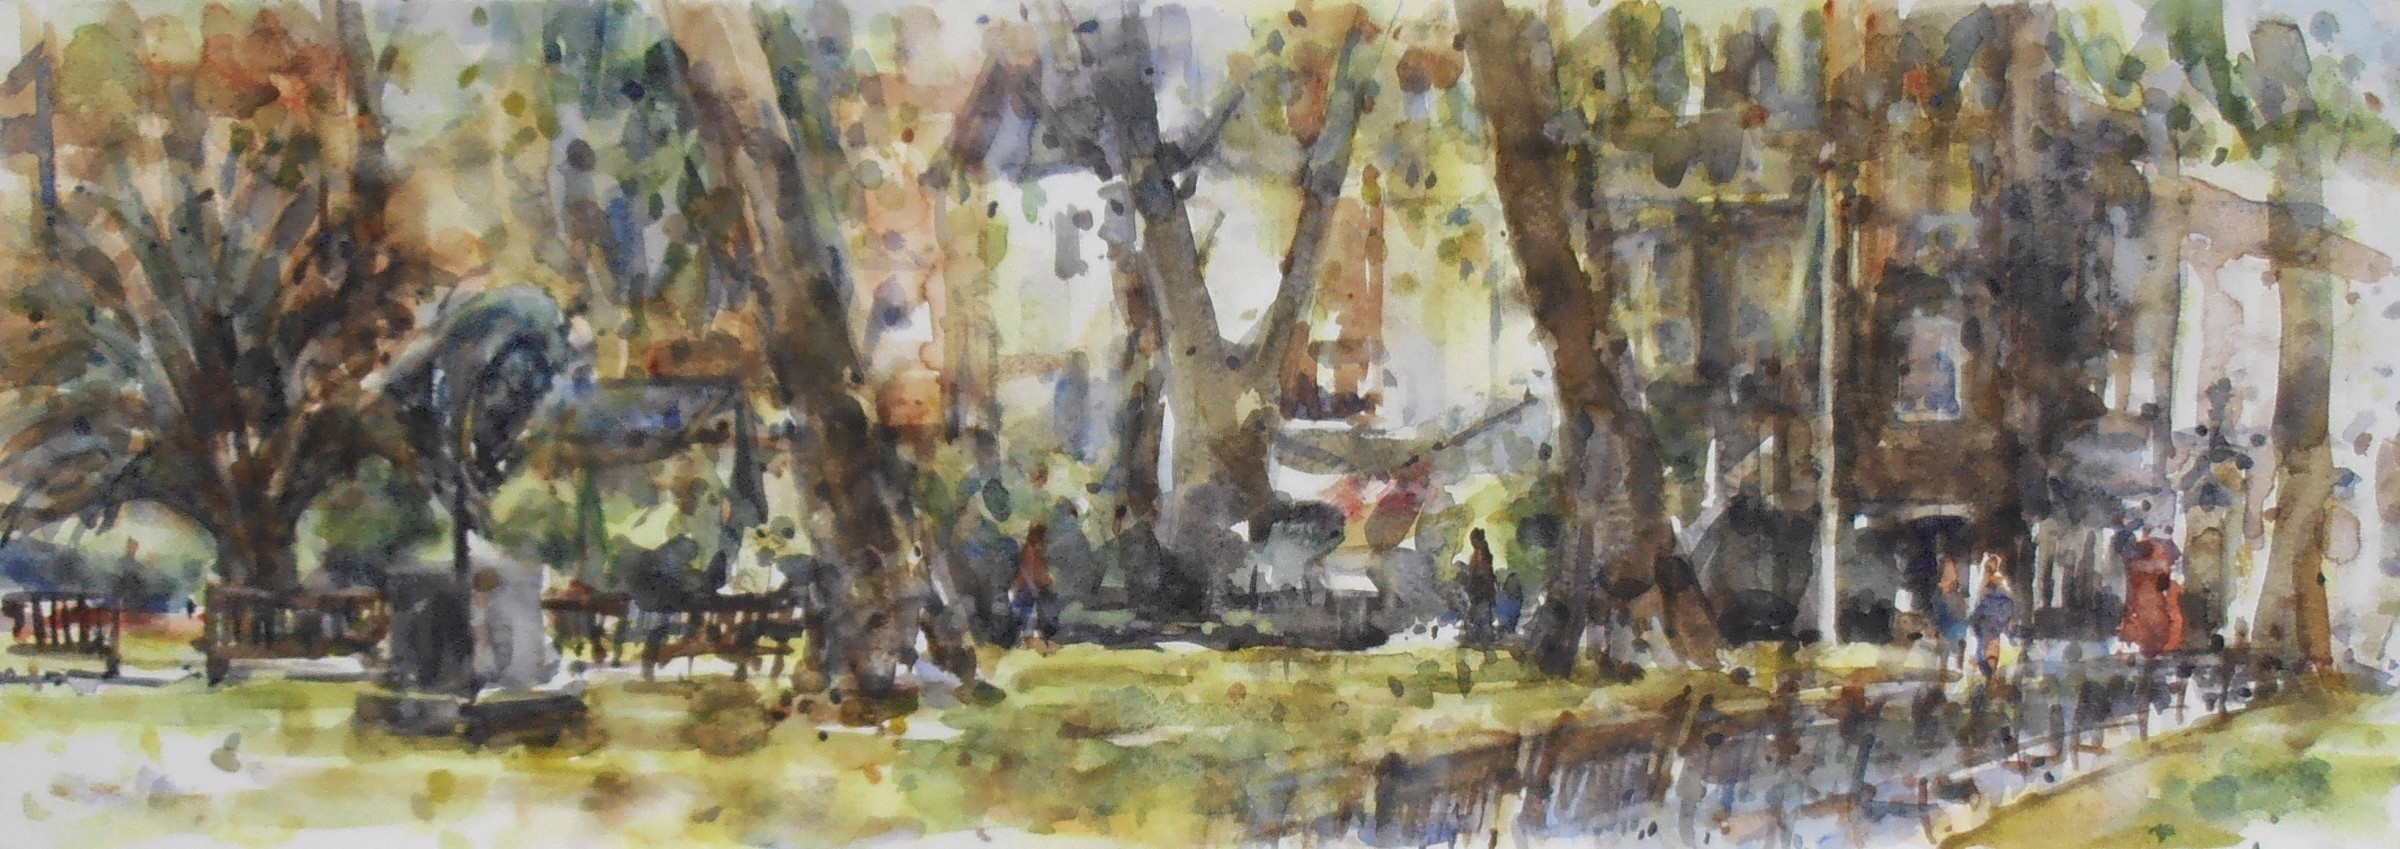 <span class=&#34;link fancybox-details-link&#34;><a href=&#34;/exhibitions/16/works/image_standalone308/&#34;>View Detail Page</a></span><p>Andrew Horrod, <em>Sunlight and shadows, Mount Street Gardens</em>, &#163;650</p>